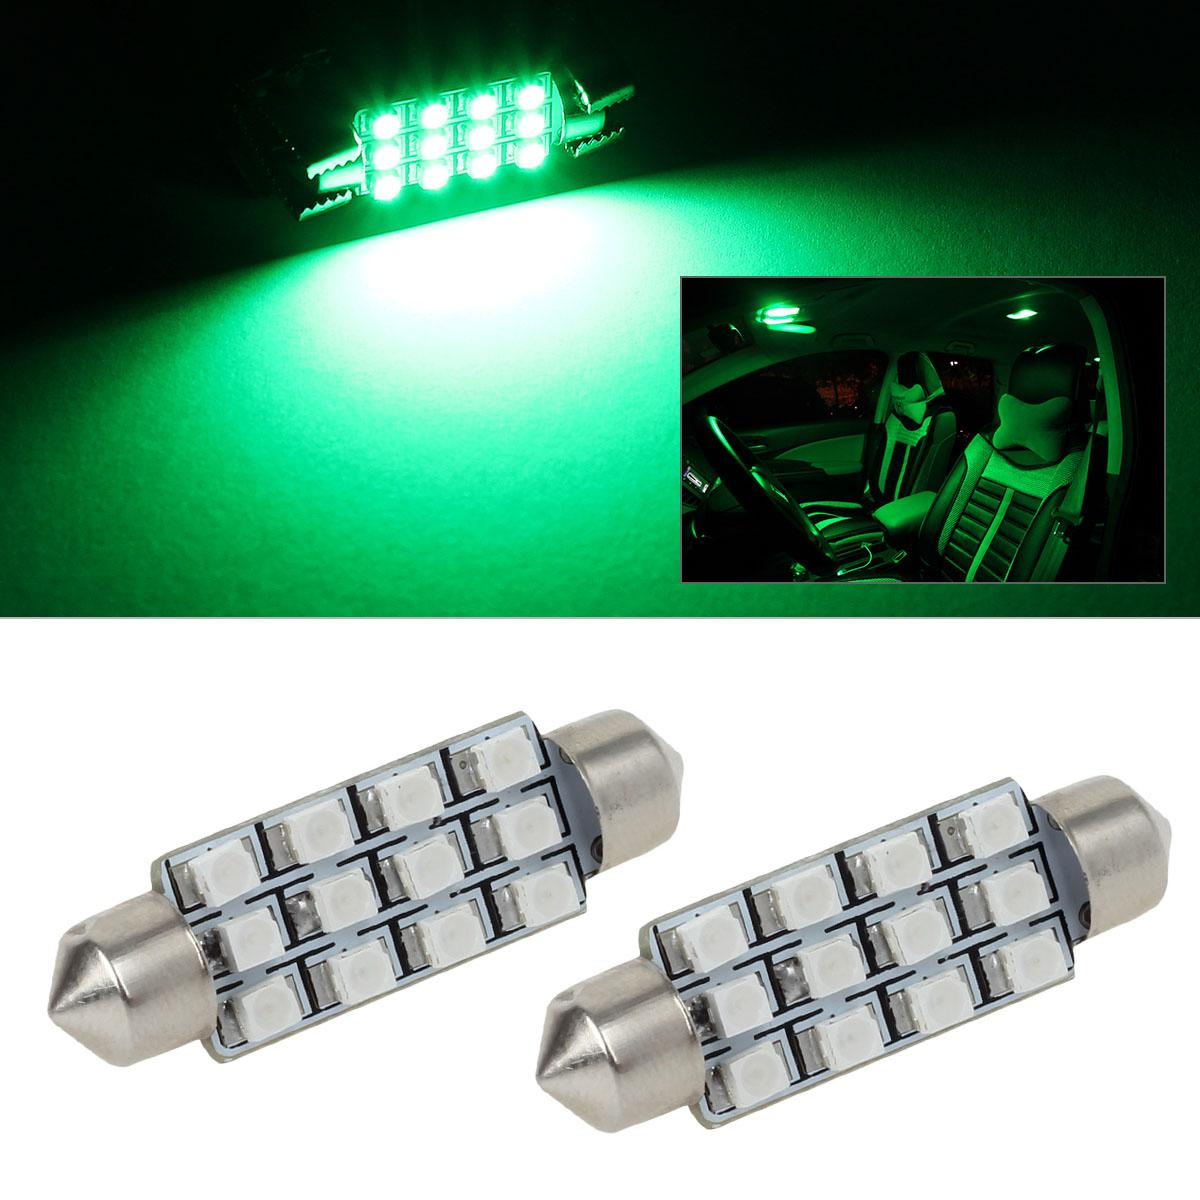 2x green 12smd car interior reading lights accessories 12v 578 212 2 211 2 ebay. Black Bedroom Furniture Sets. Home Design Ideas